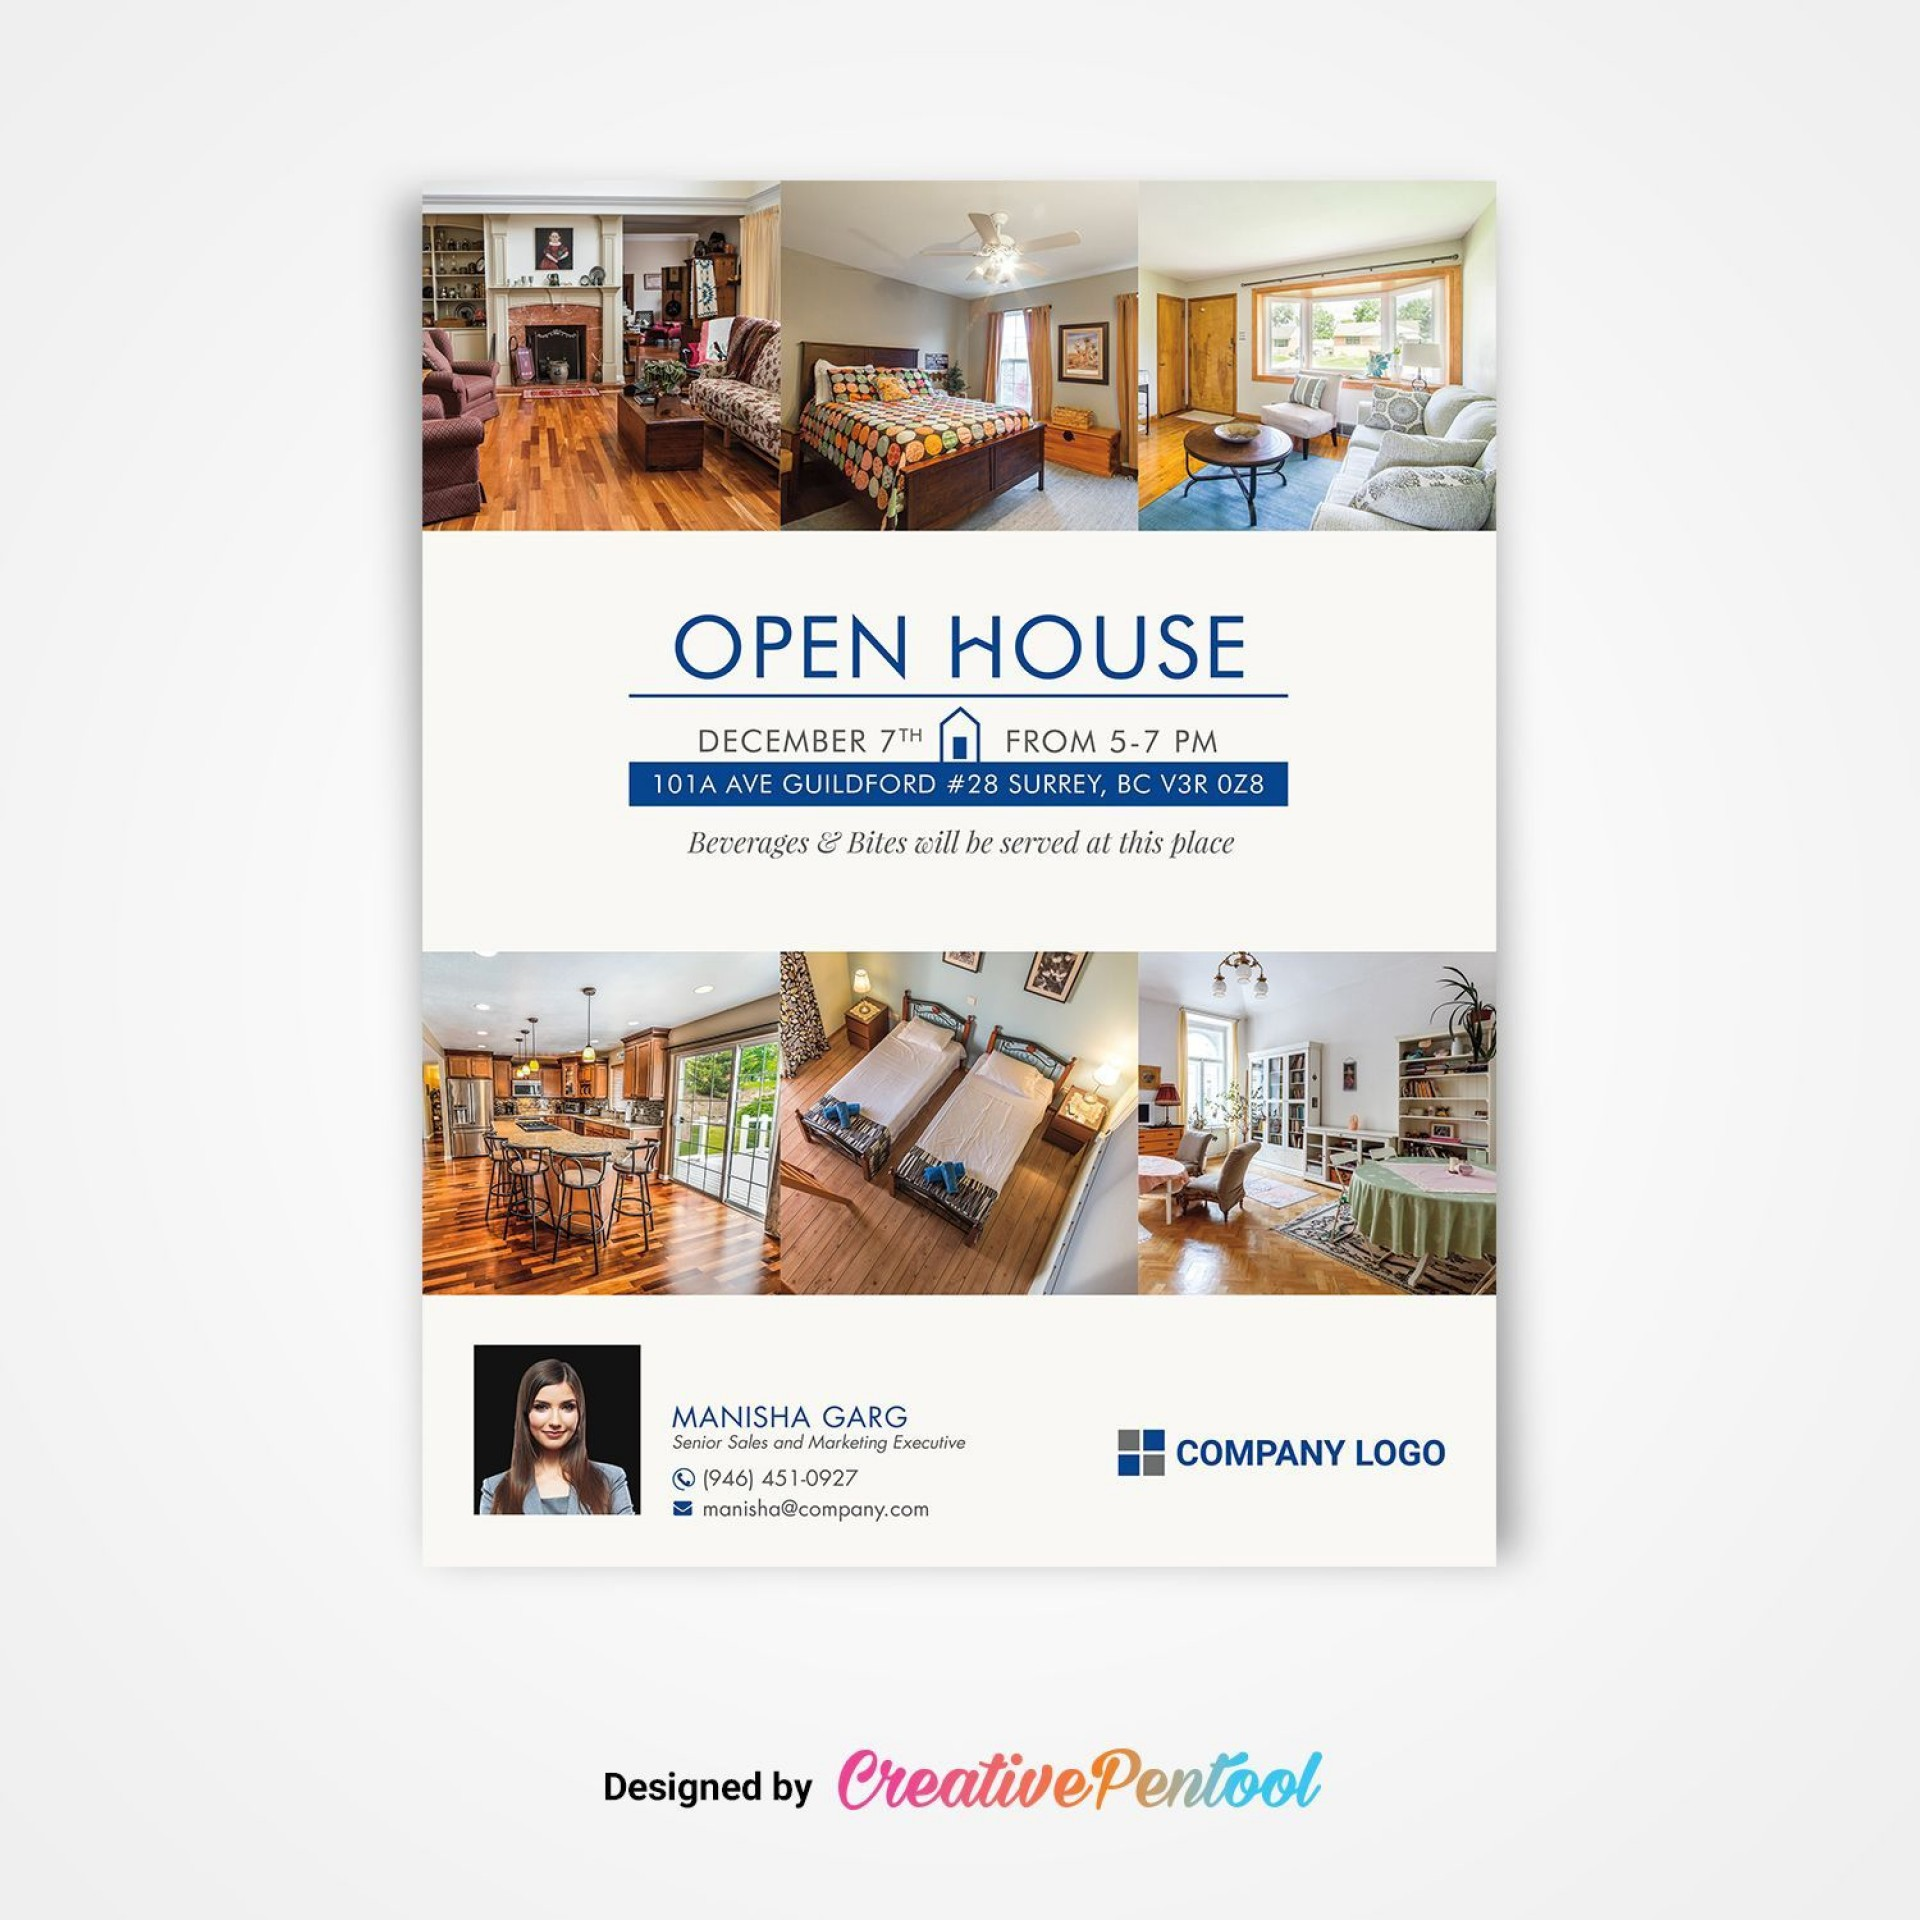 002 Dreaded Open House Flyer Template Example  Templates Free School Microsoft1920